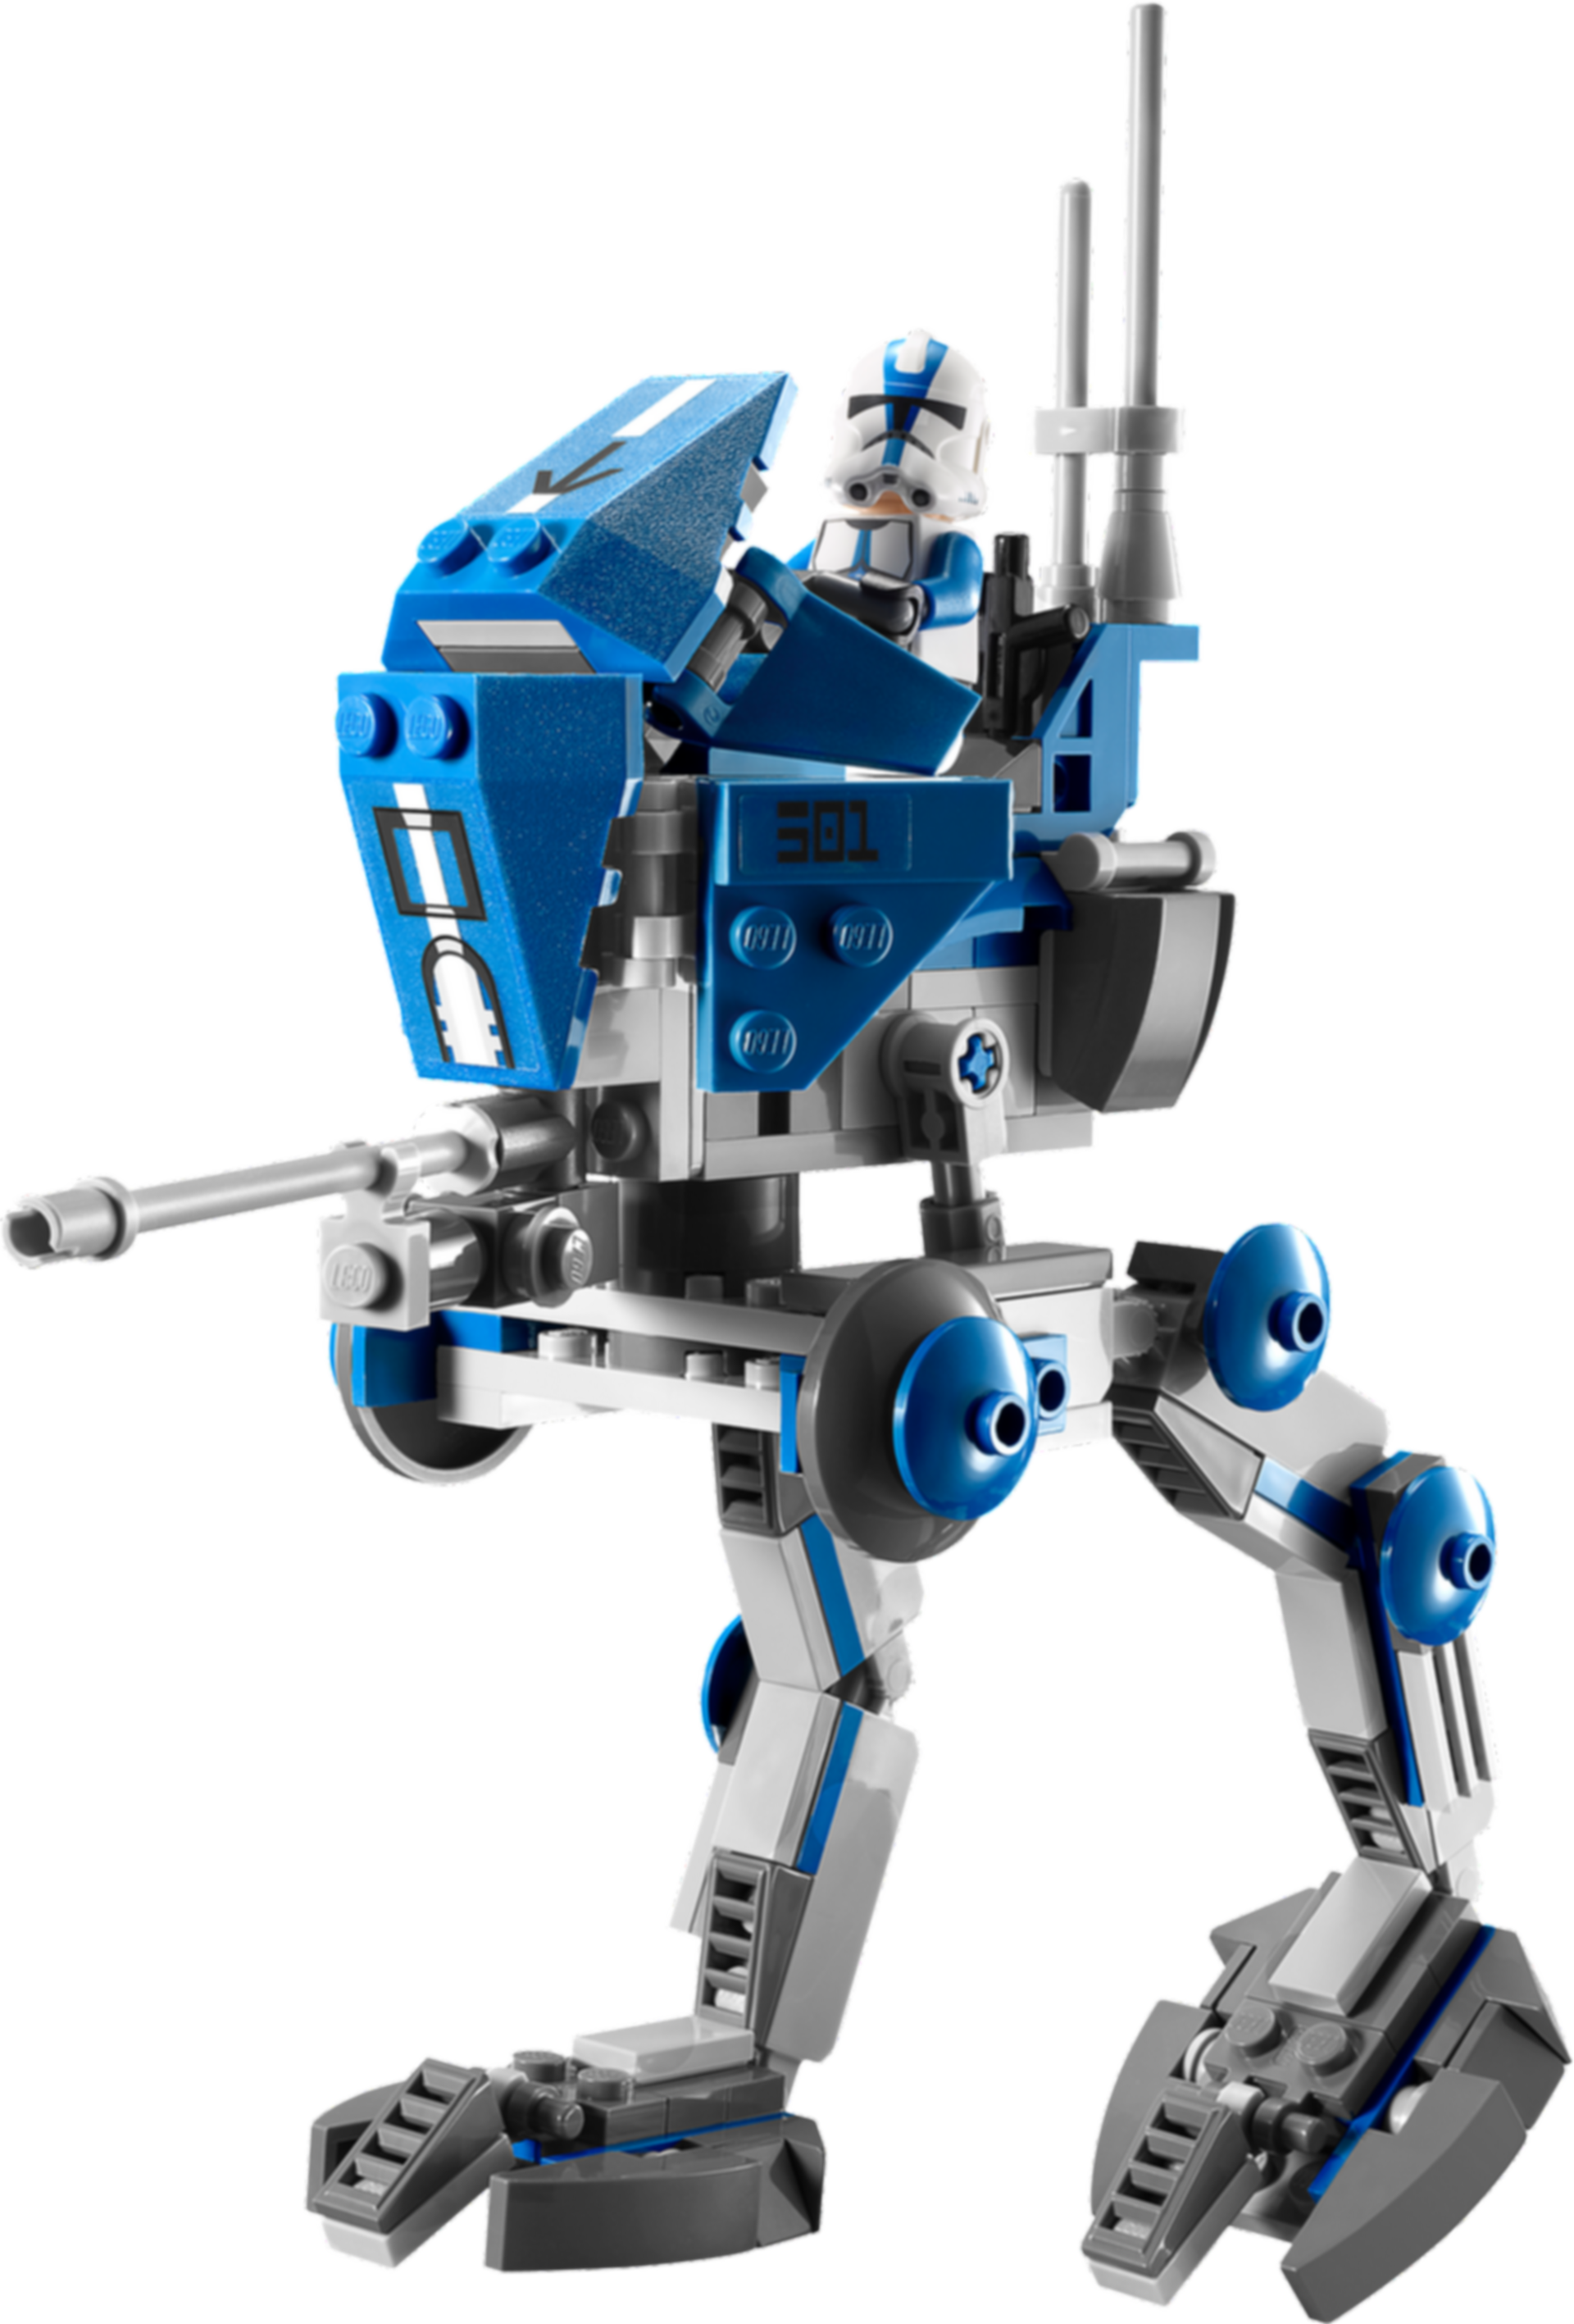 LEGO® Star Wars AT-RT components